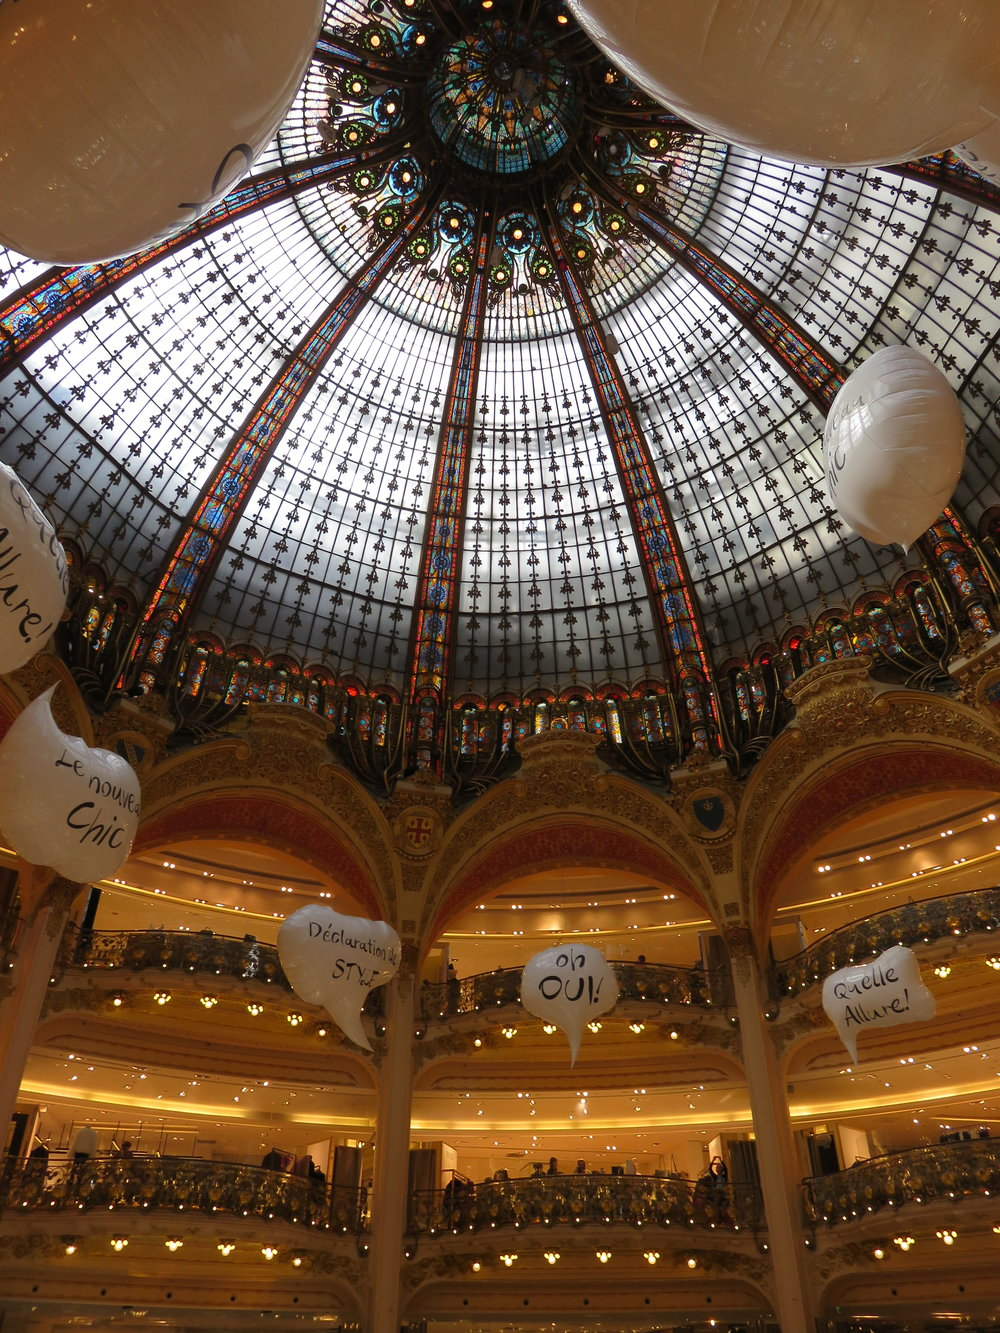 Galleries Lafayette. Paris is credited with being the birthplace of the department store. You know you're not a Macys when you shop here.